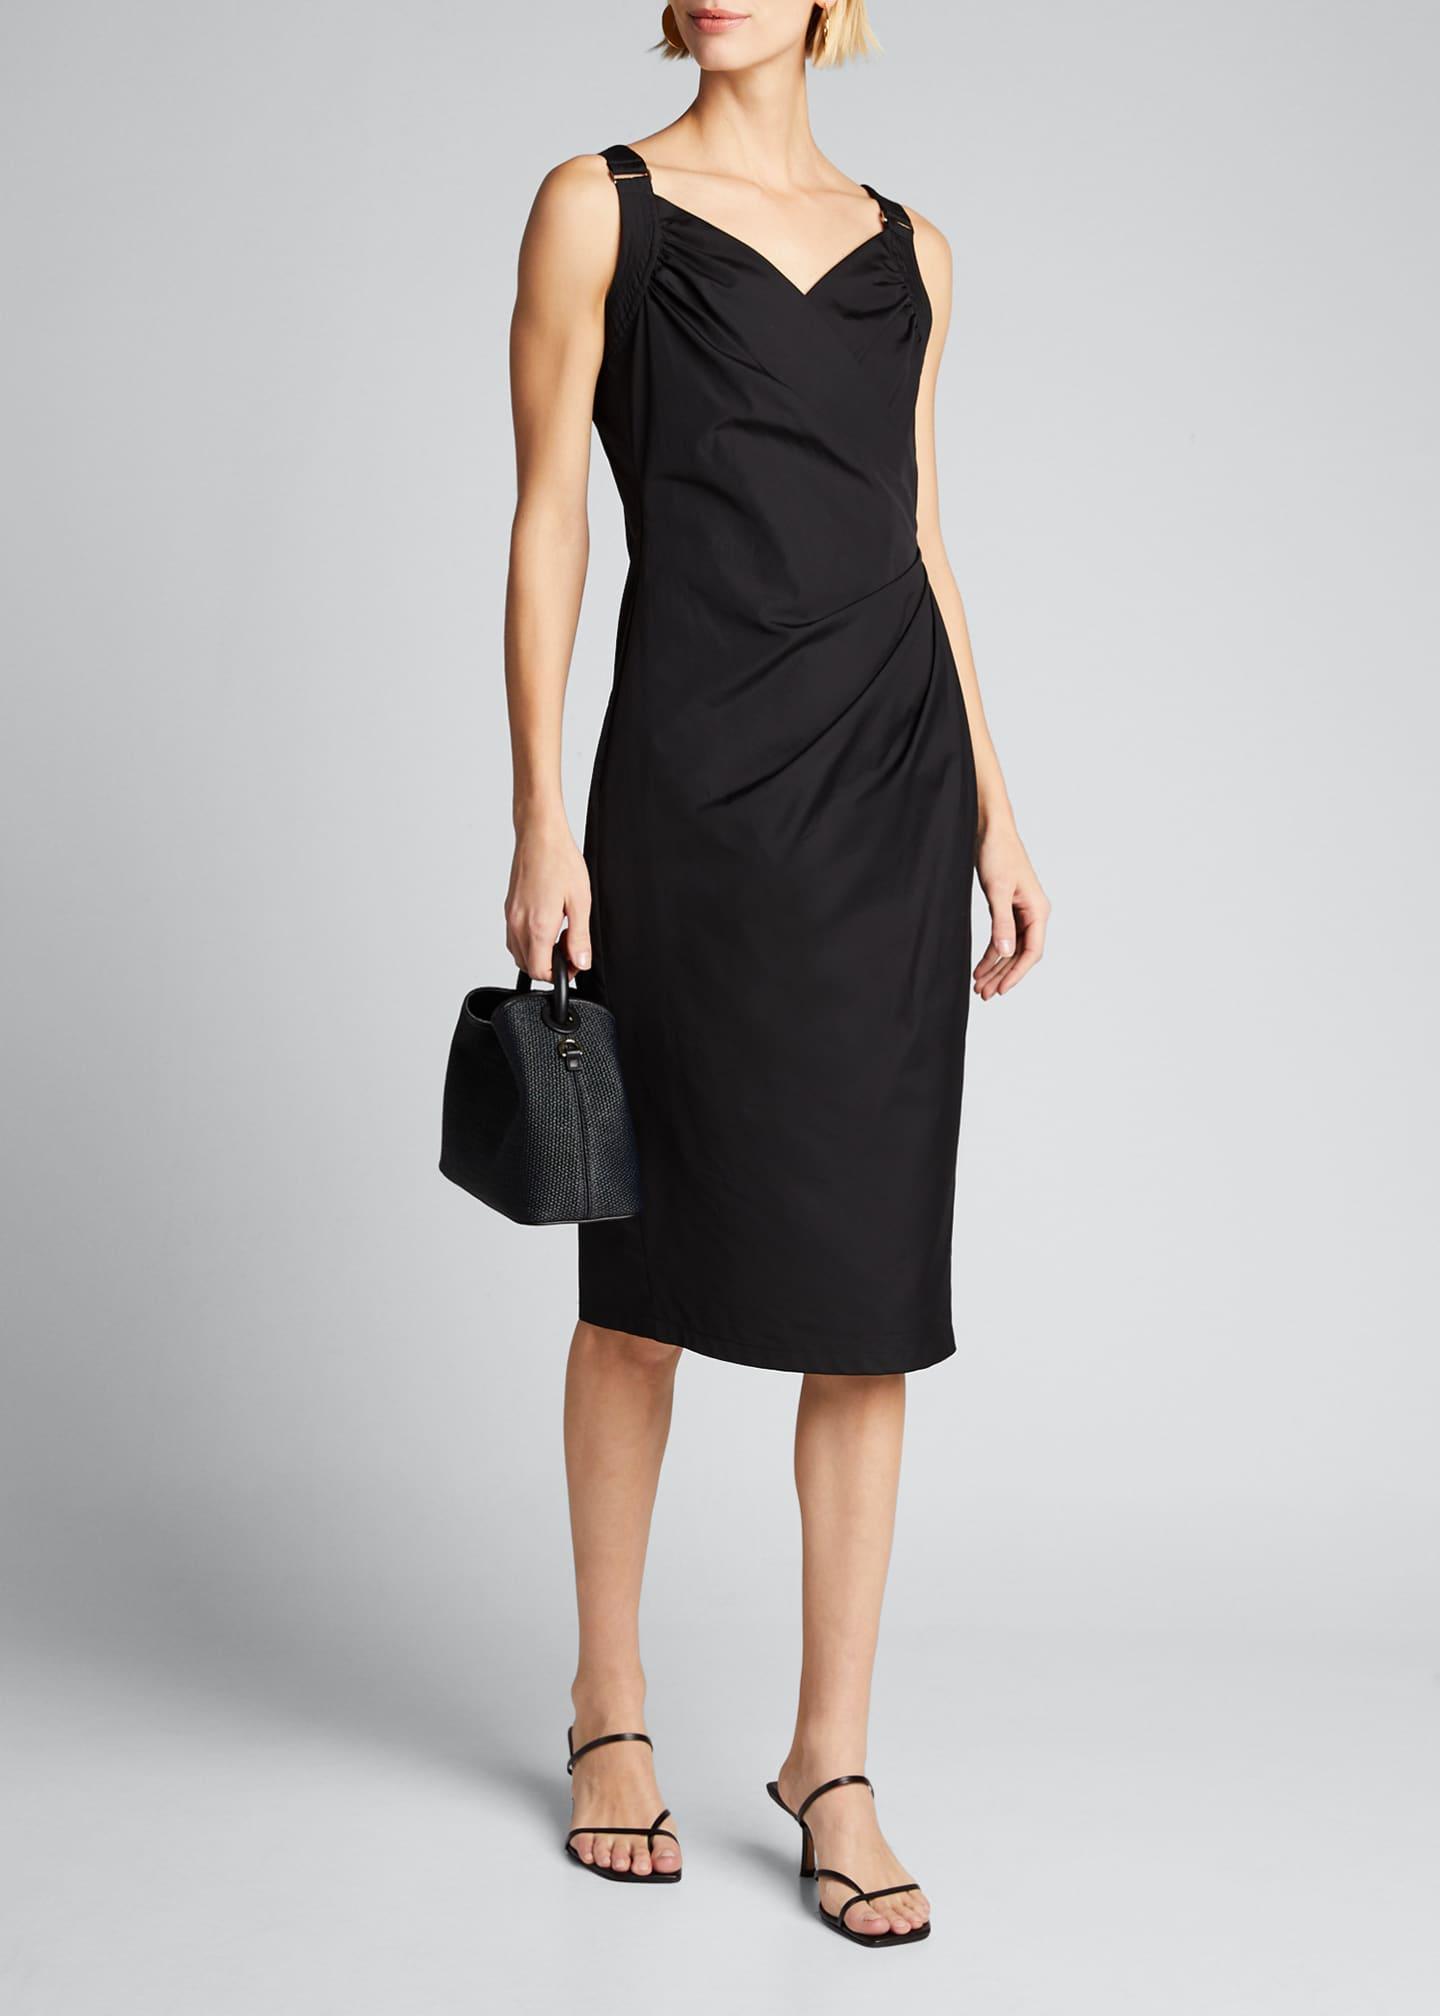 Image 1 of 5: Cotton Poplin Ruched Dress